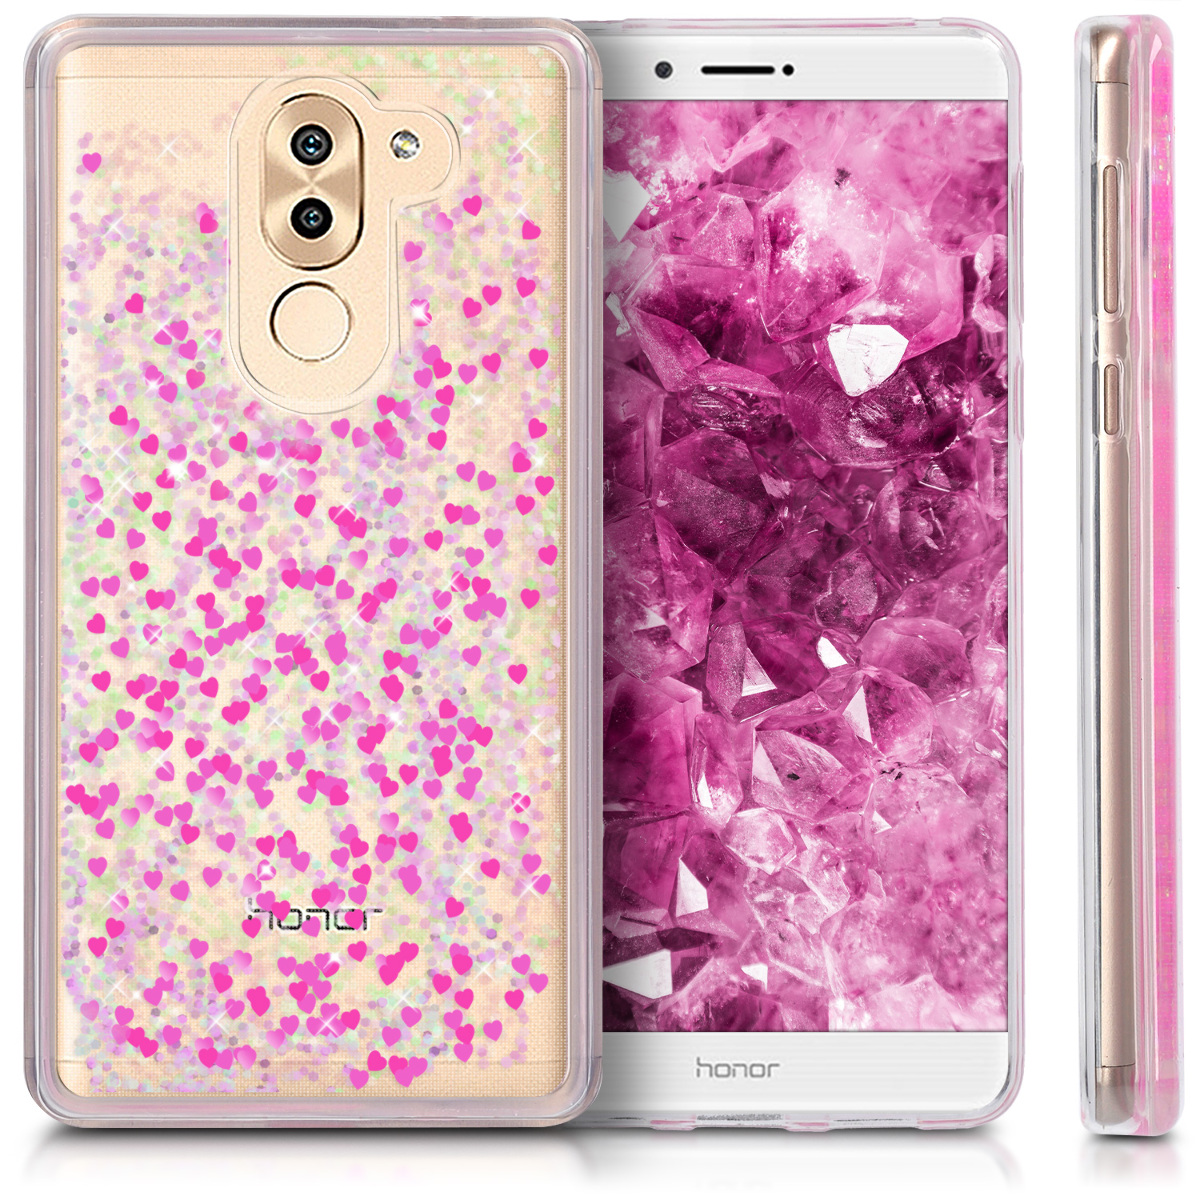 tui rigide coque eau pour huawei honor 6x gr5 2017 mate 9 lite boule de neige ebay. Black Bedroom Furniture Sets. Home Design Ideas